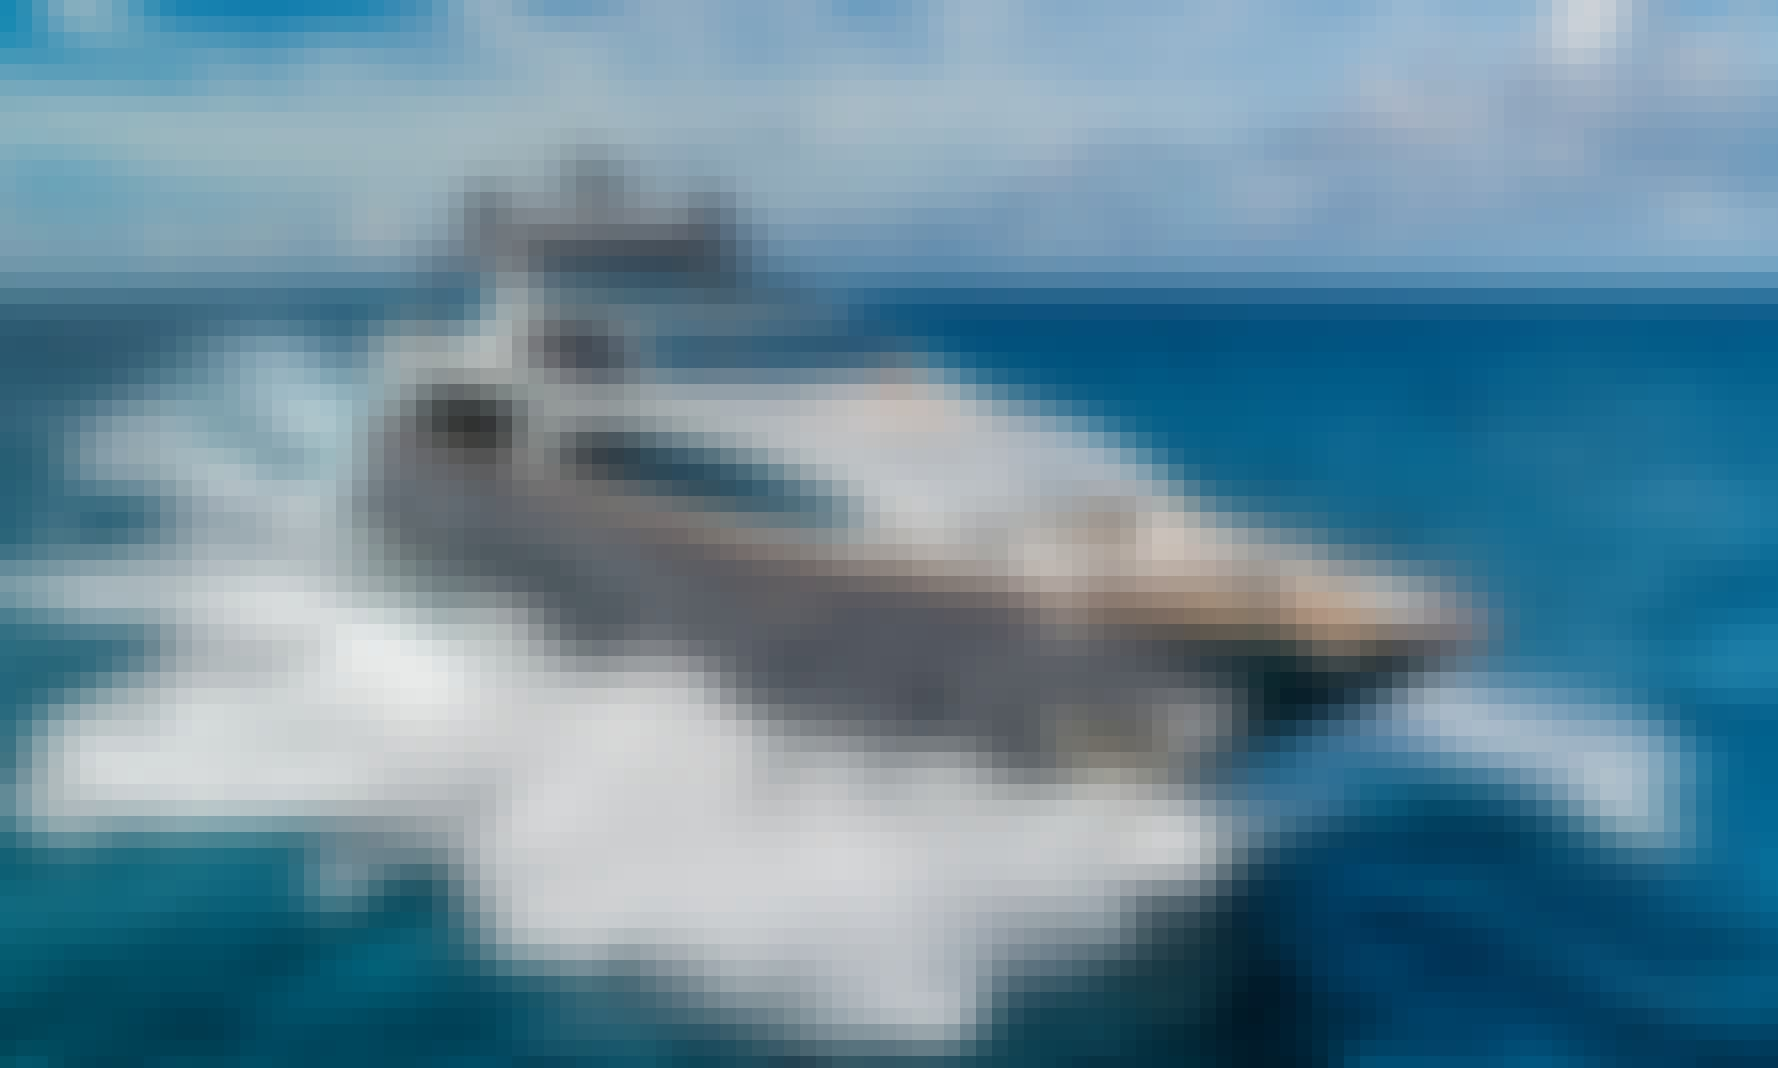 116ft Azimut- Luxury Private Yacht- Six Crew- 32ft Scout tender included